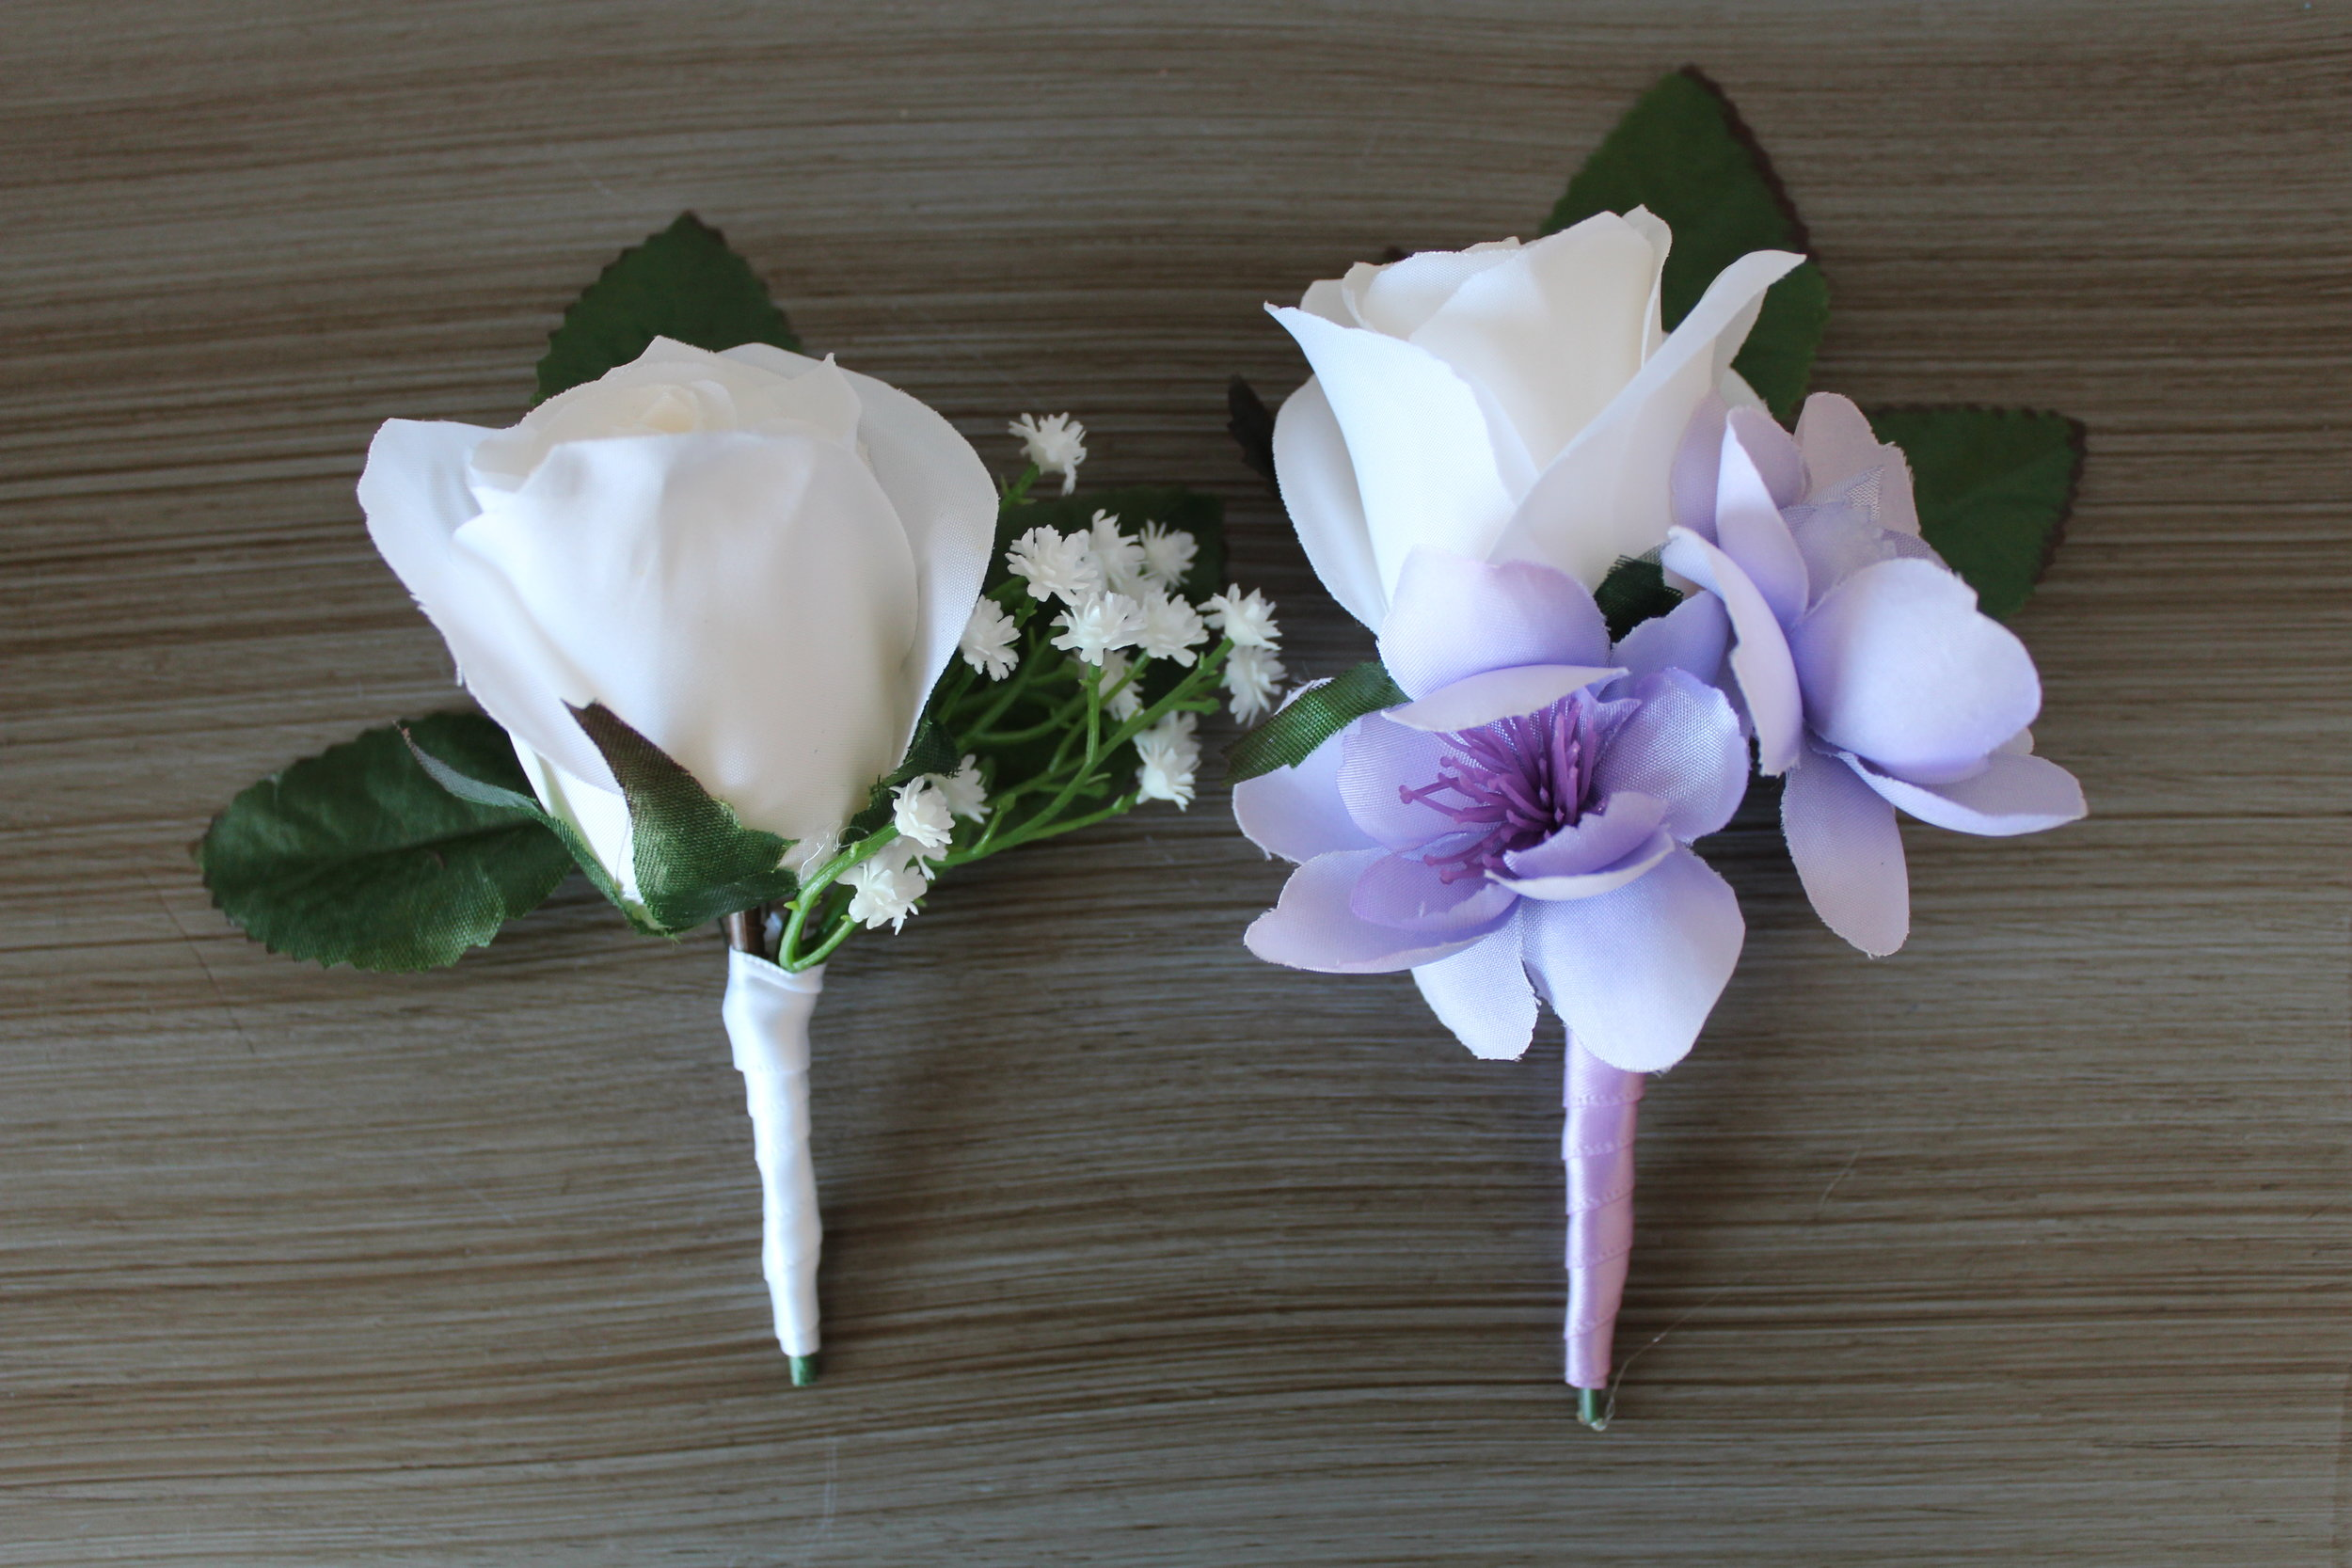 Groom's boutonniere and Best Man's boutonniere.